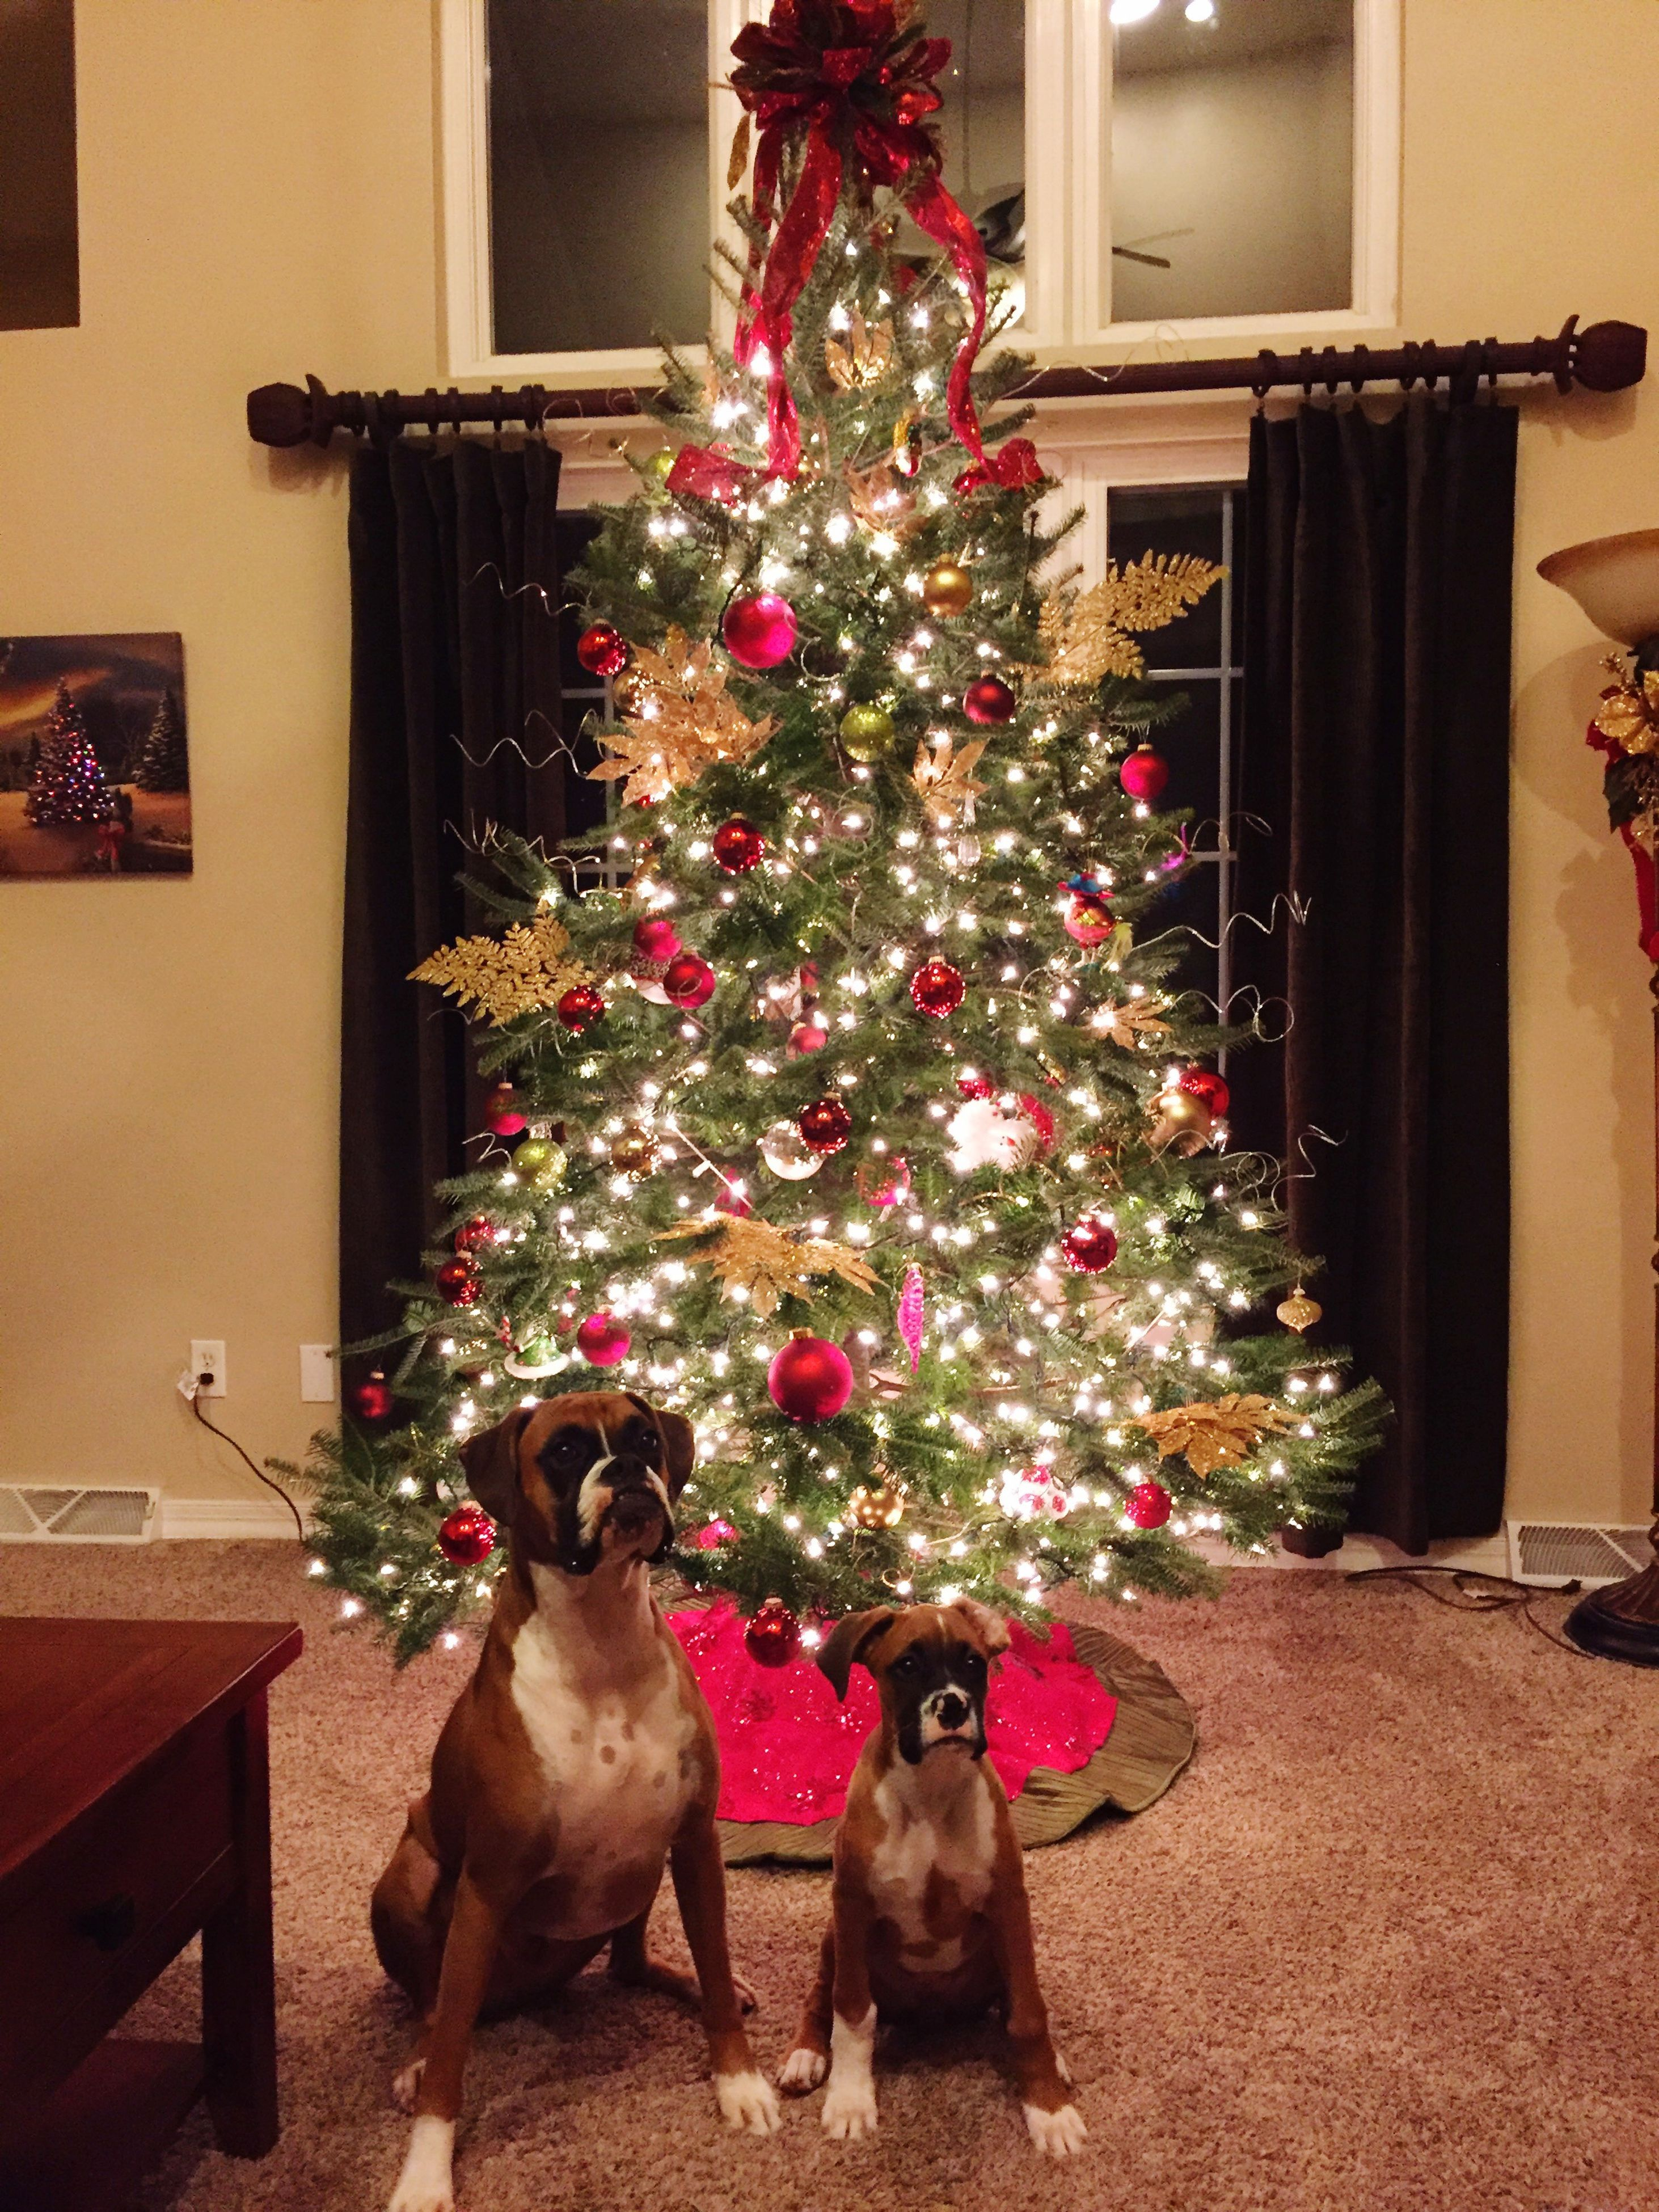 domestic animals, animal themes, flower, pets, dog, built structure, architecture, mammal, one animal, christmas, building exterior, decoration, indoors, house, christmas tree, celebration, no people, tradition, multi colored, window